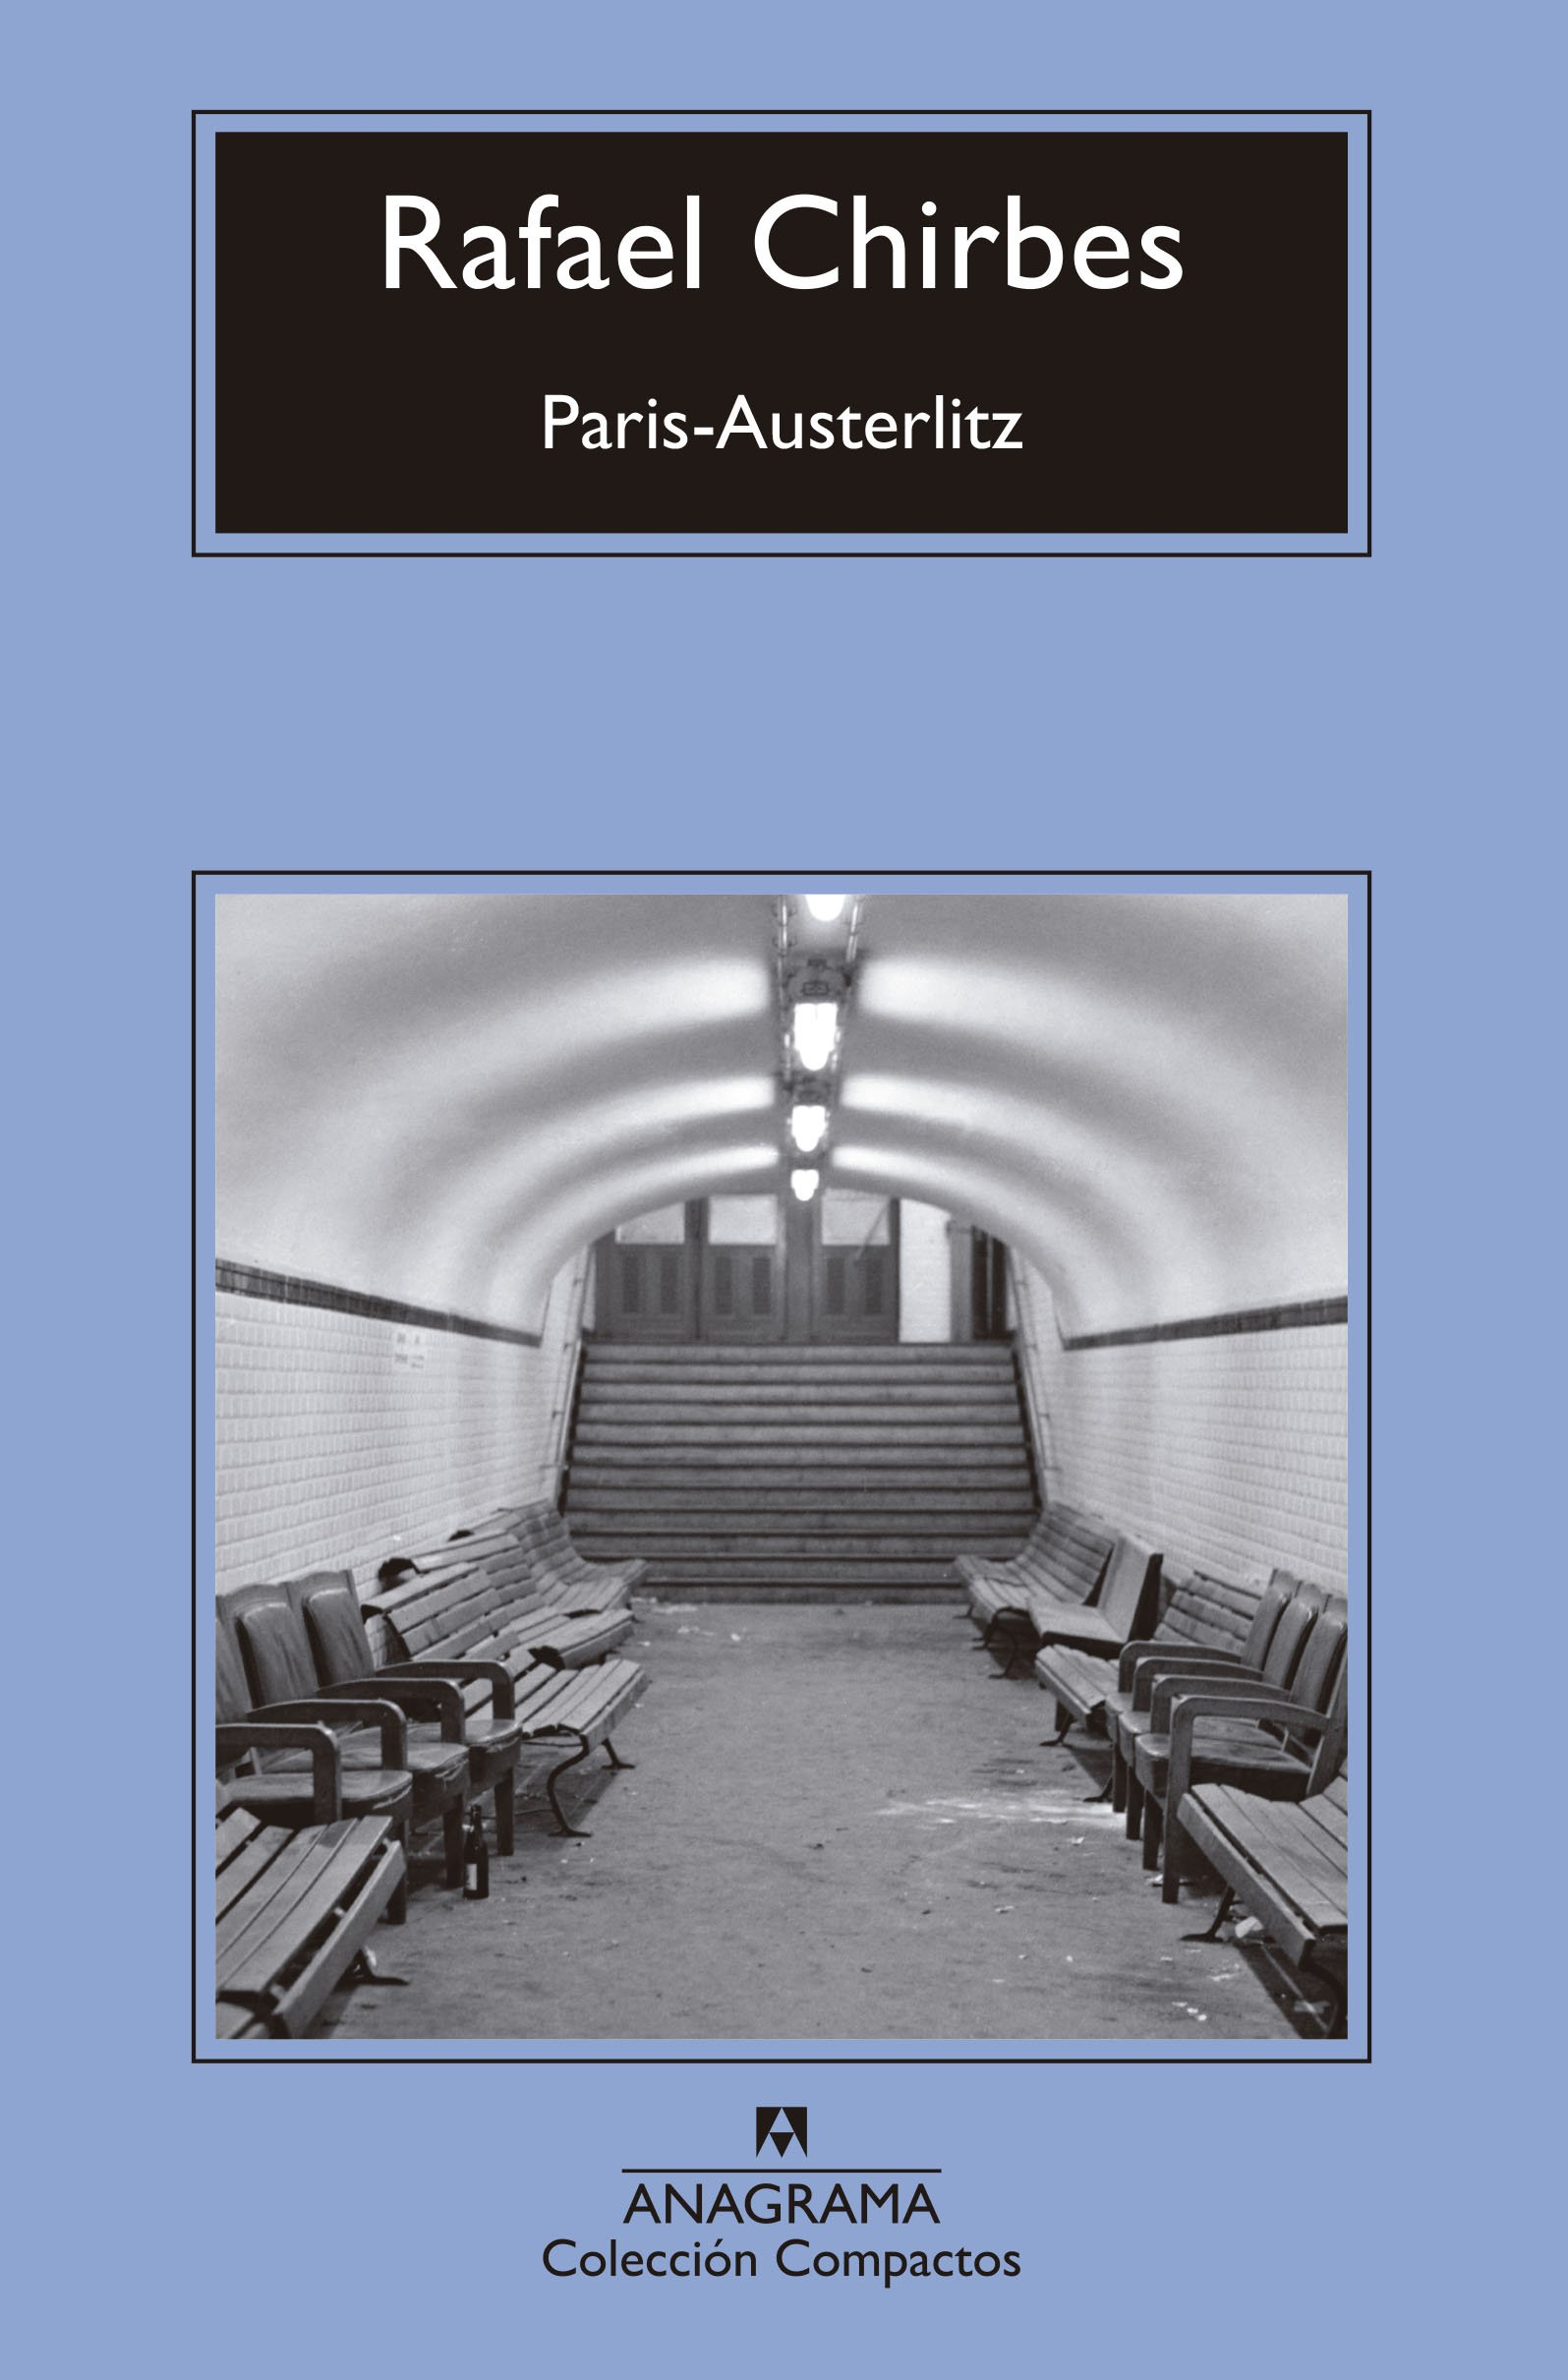 cover of Paris-Austerlitz, featuring a photo of some kind of underground tunnel lined with benches and chairs